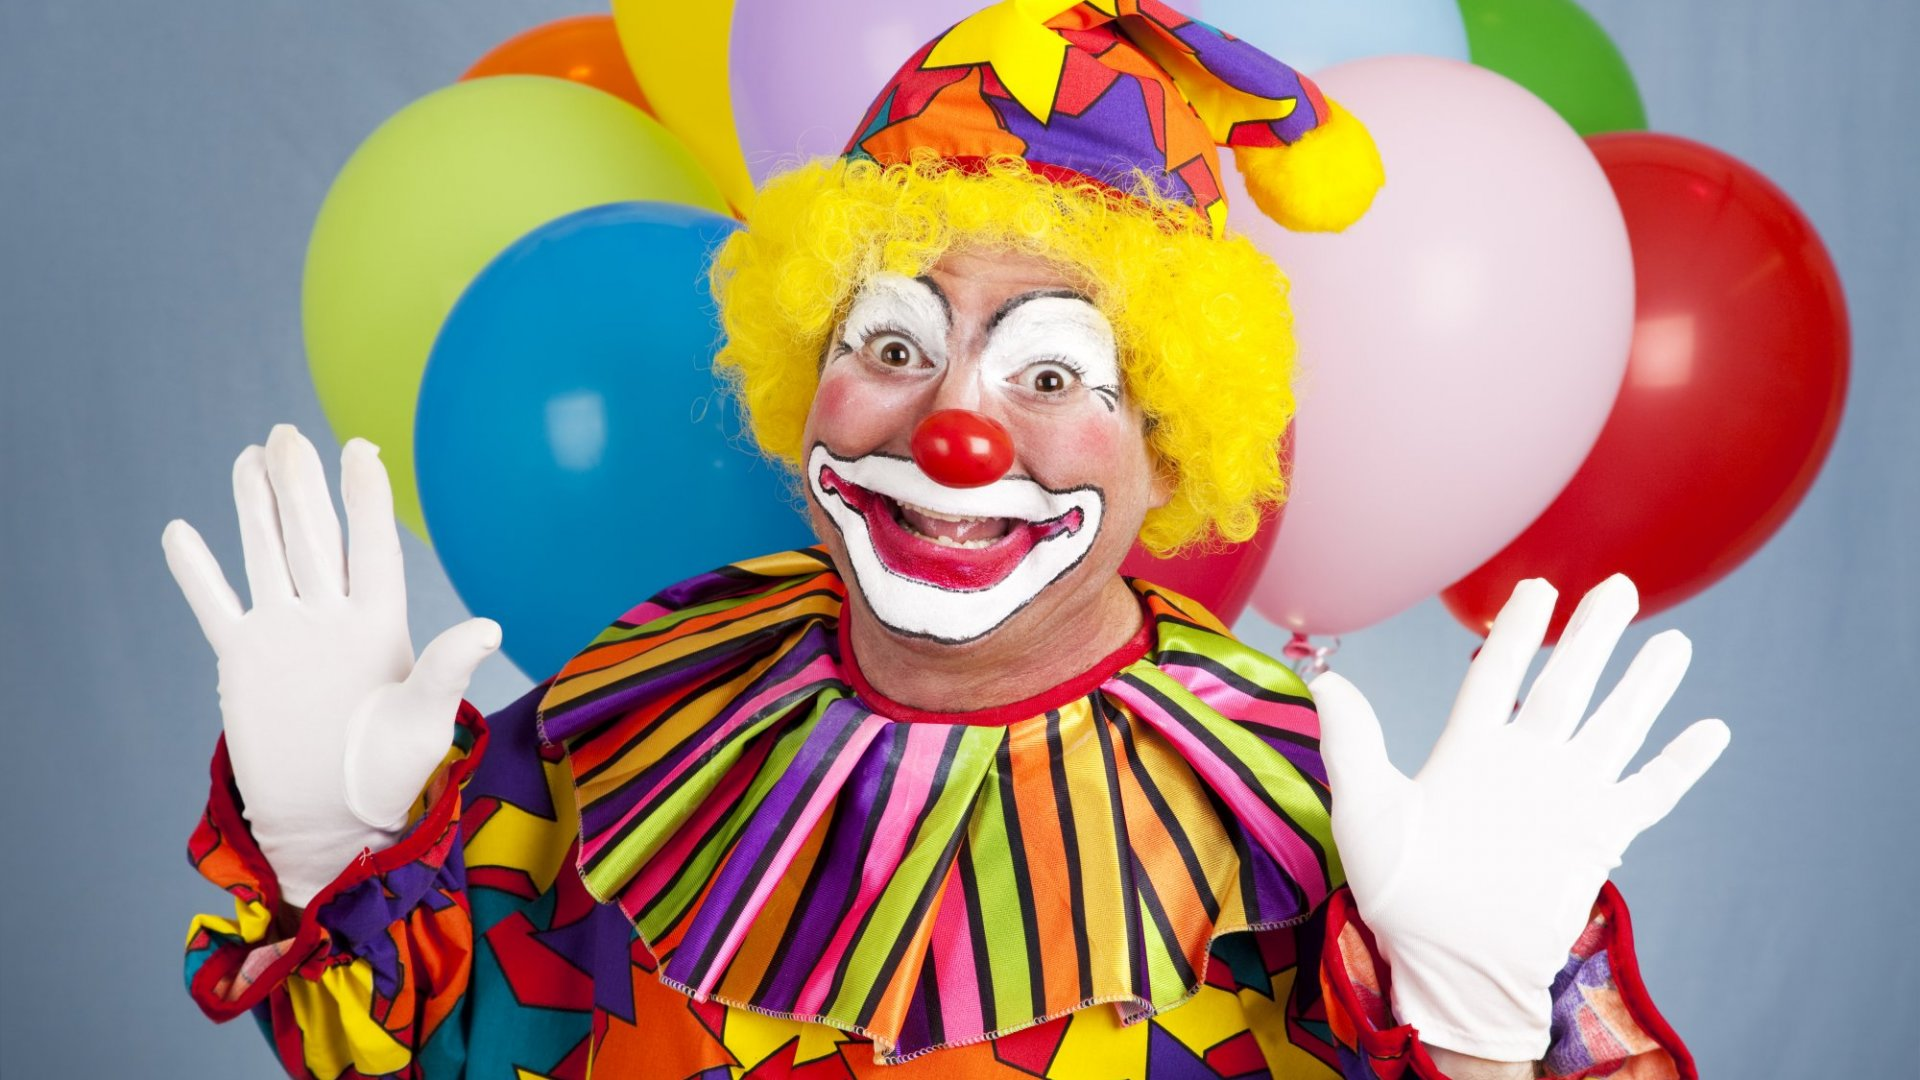 Man Brings Emotional Support Clown to Termination Meeting